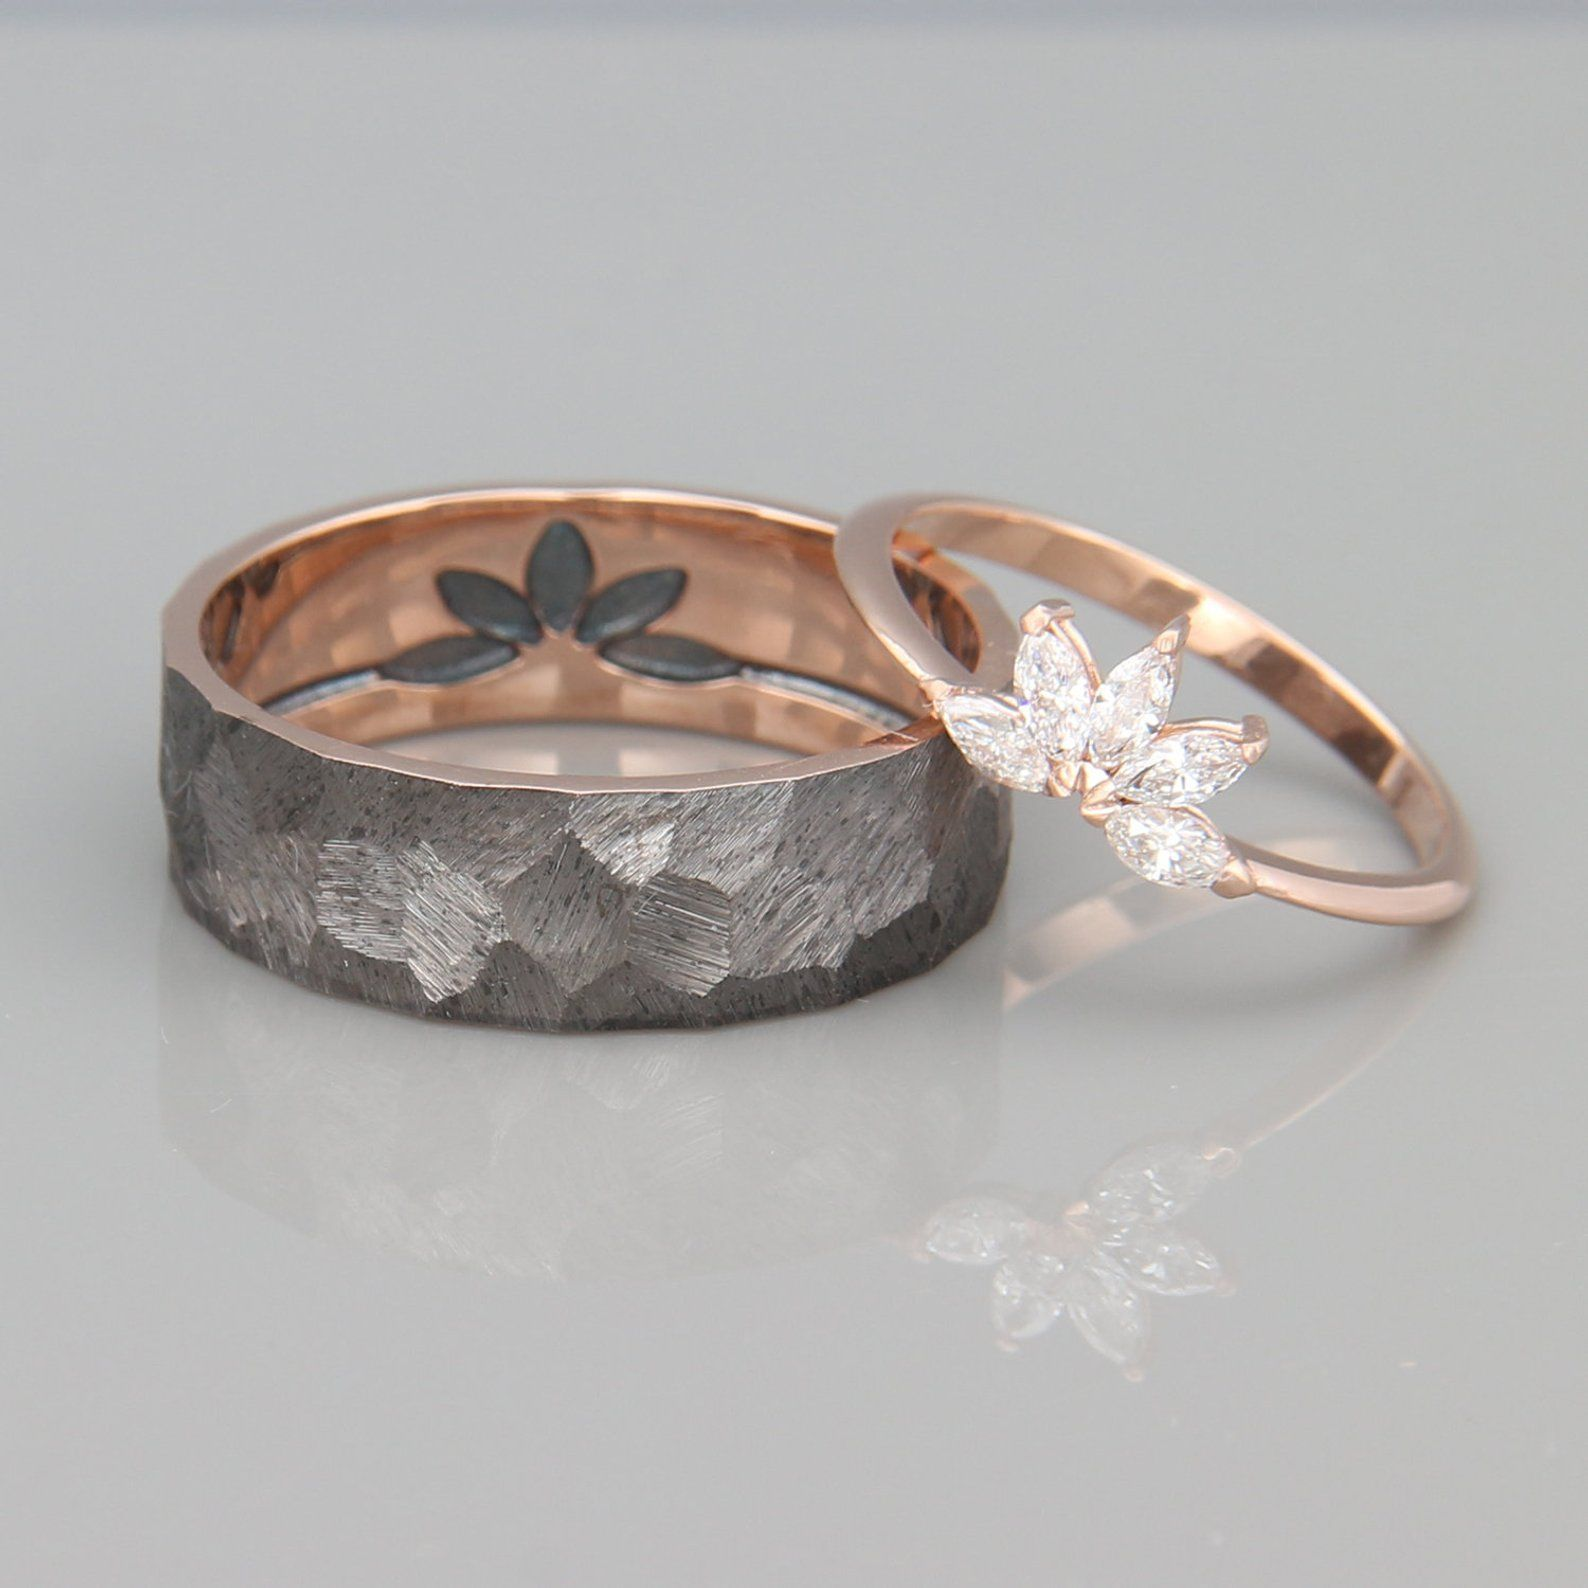 Pin by Brianna Lee on Rings in 2020 Wedding rings sets